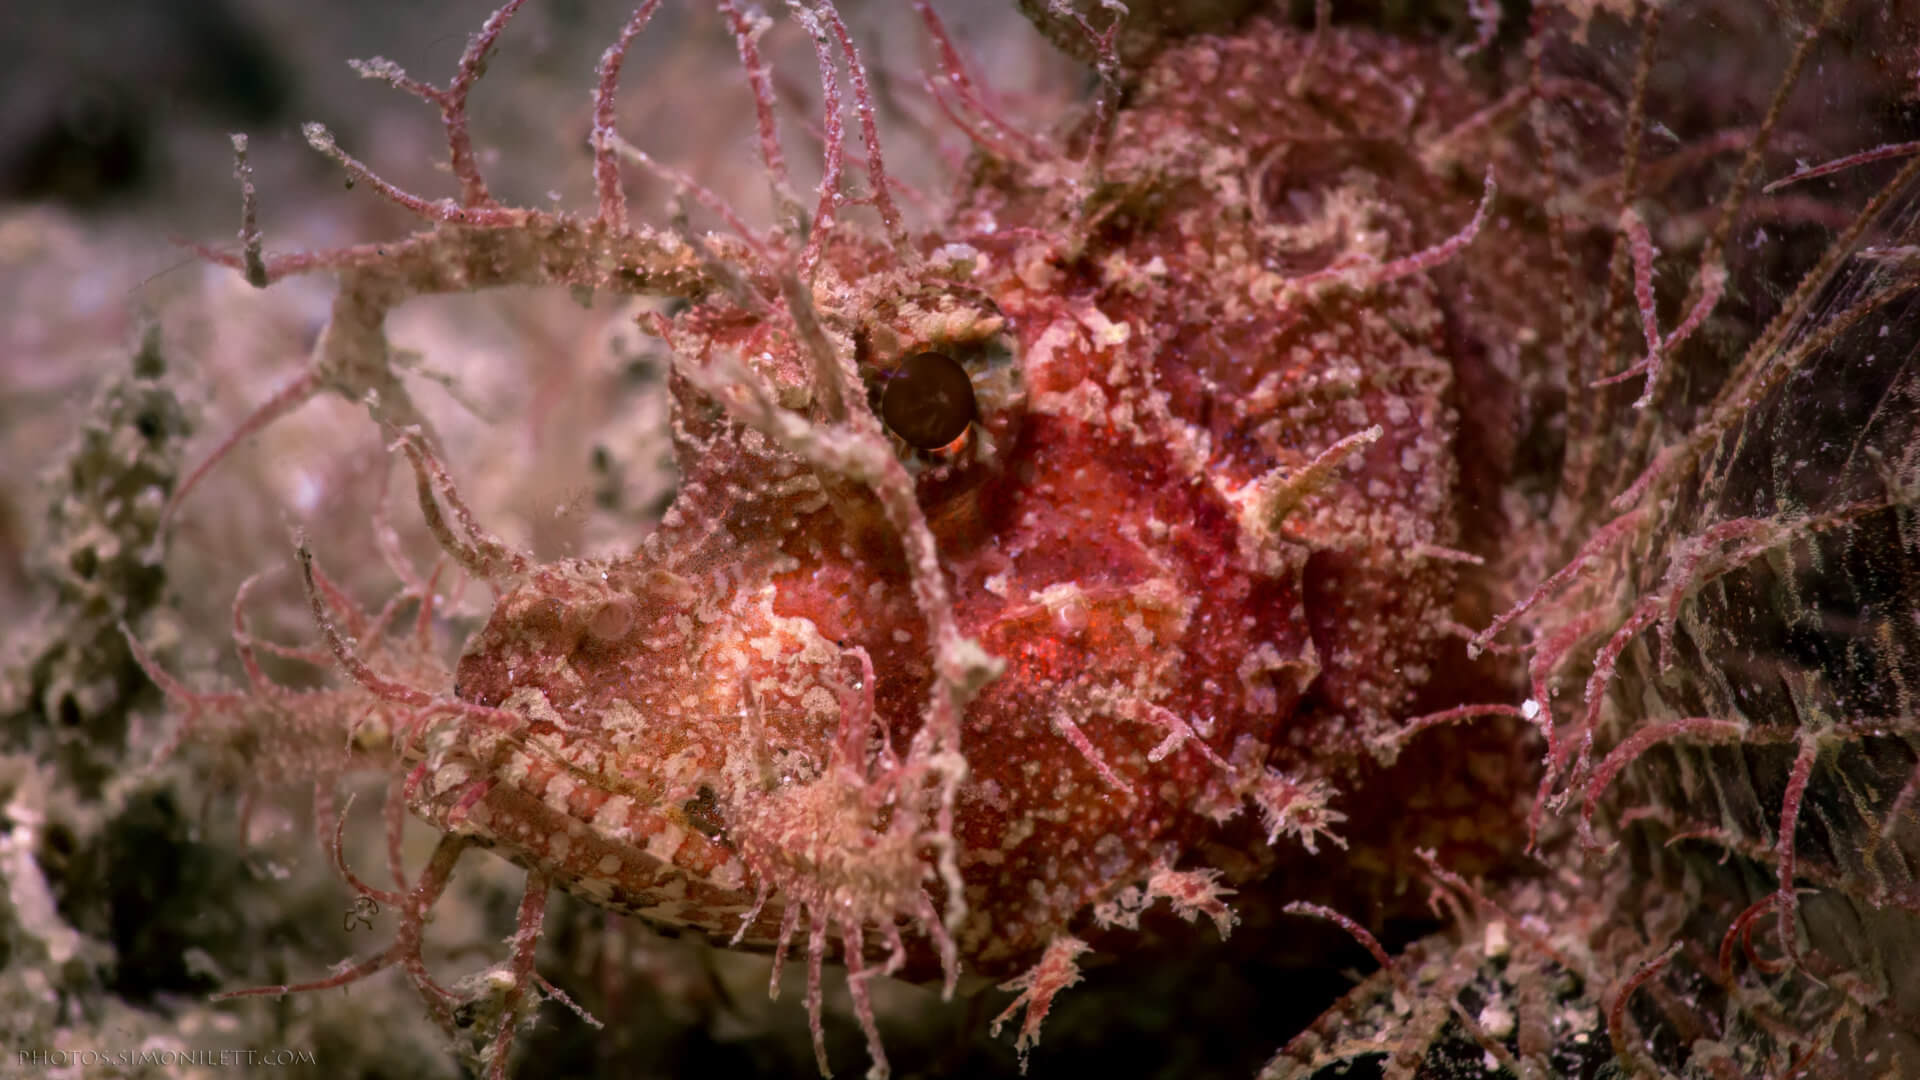 Ambon Scorpion Fish – An Unexpected Find In Phuket